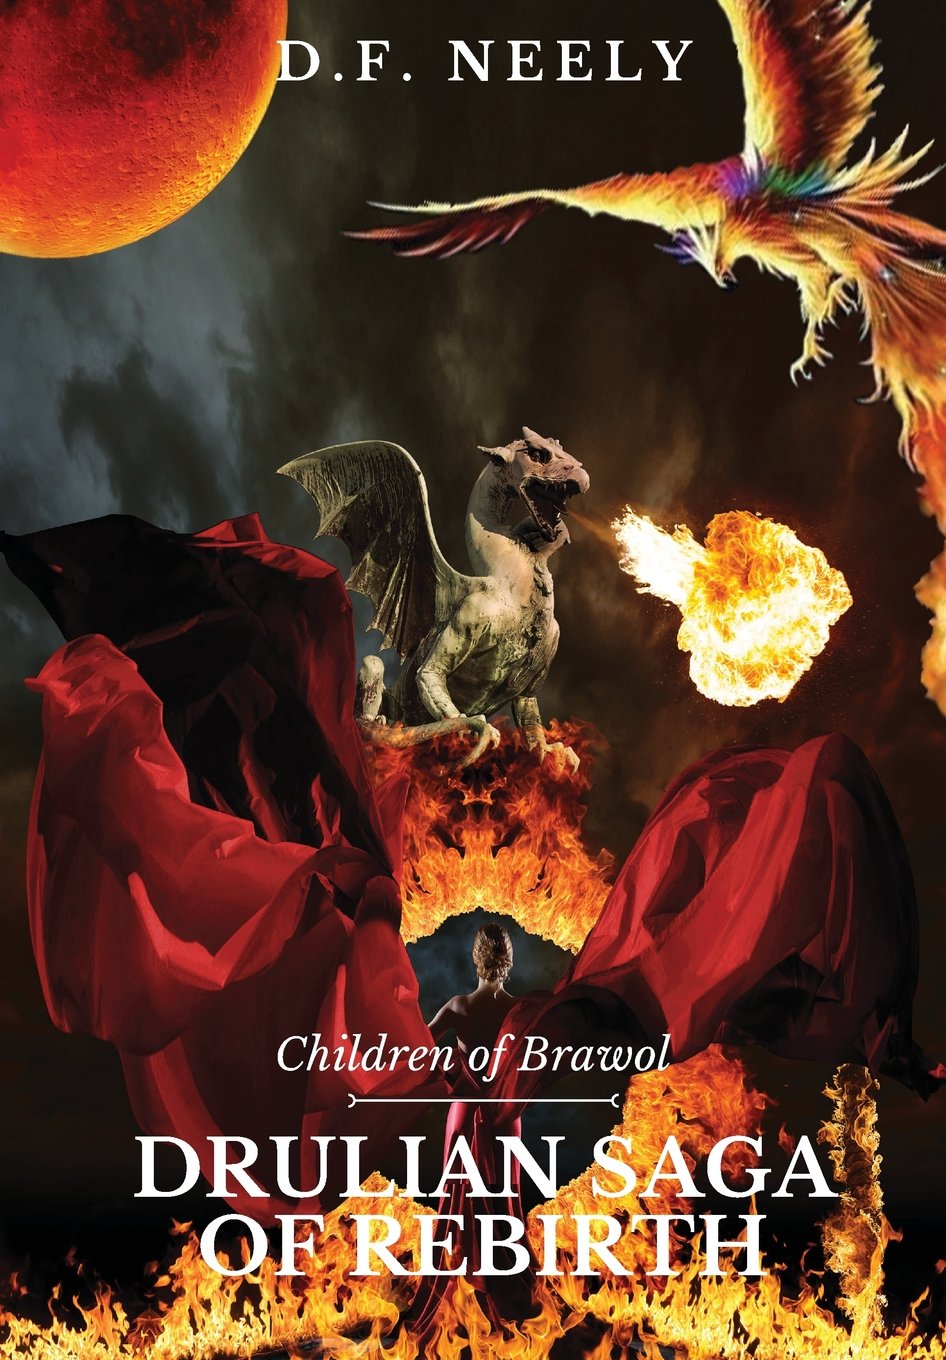 Download Children of Brawol: Drulian Saga of Rebirth pdf